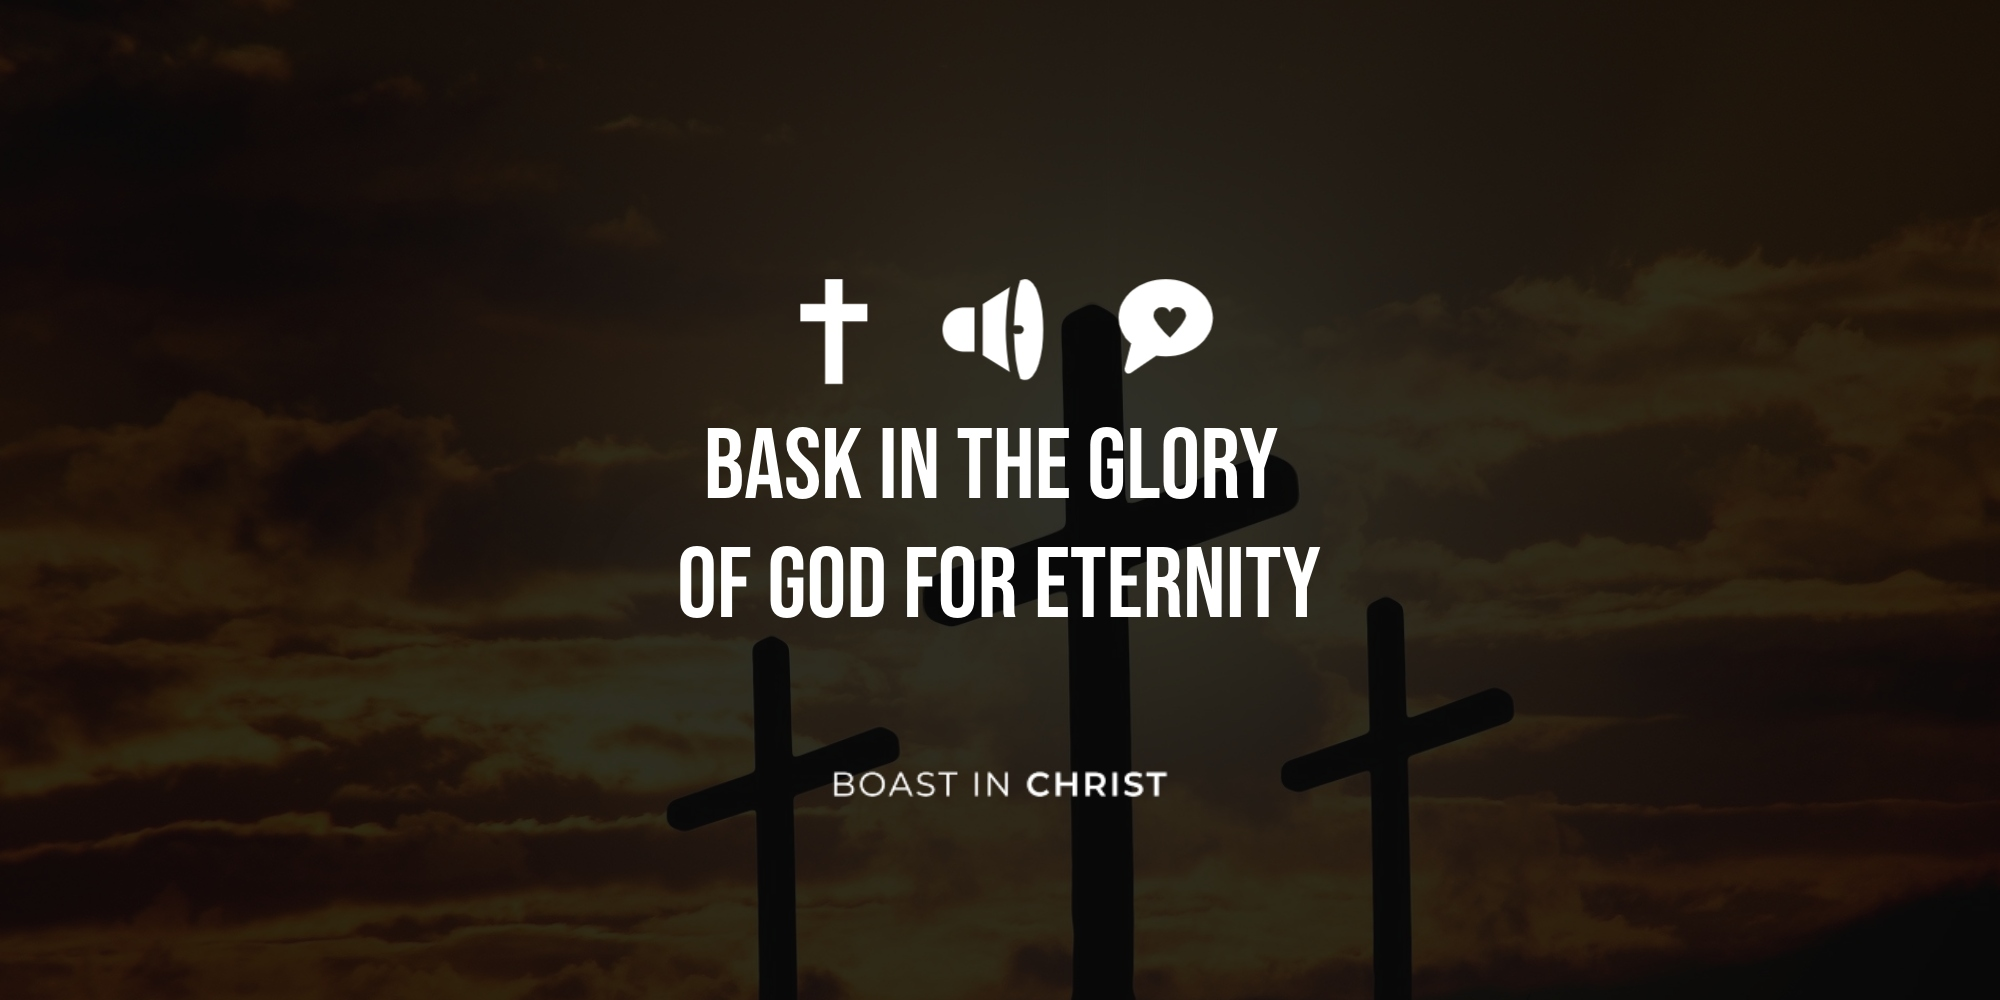 Bask in The Glory of God For Eternity